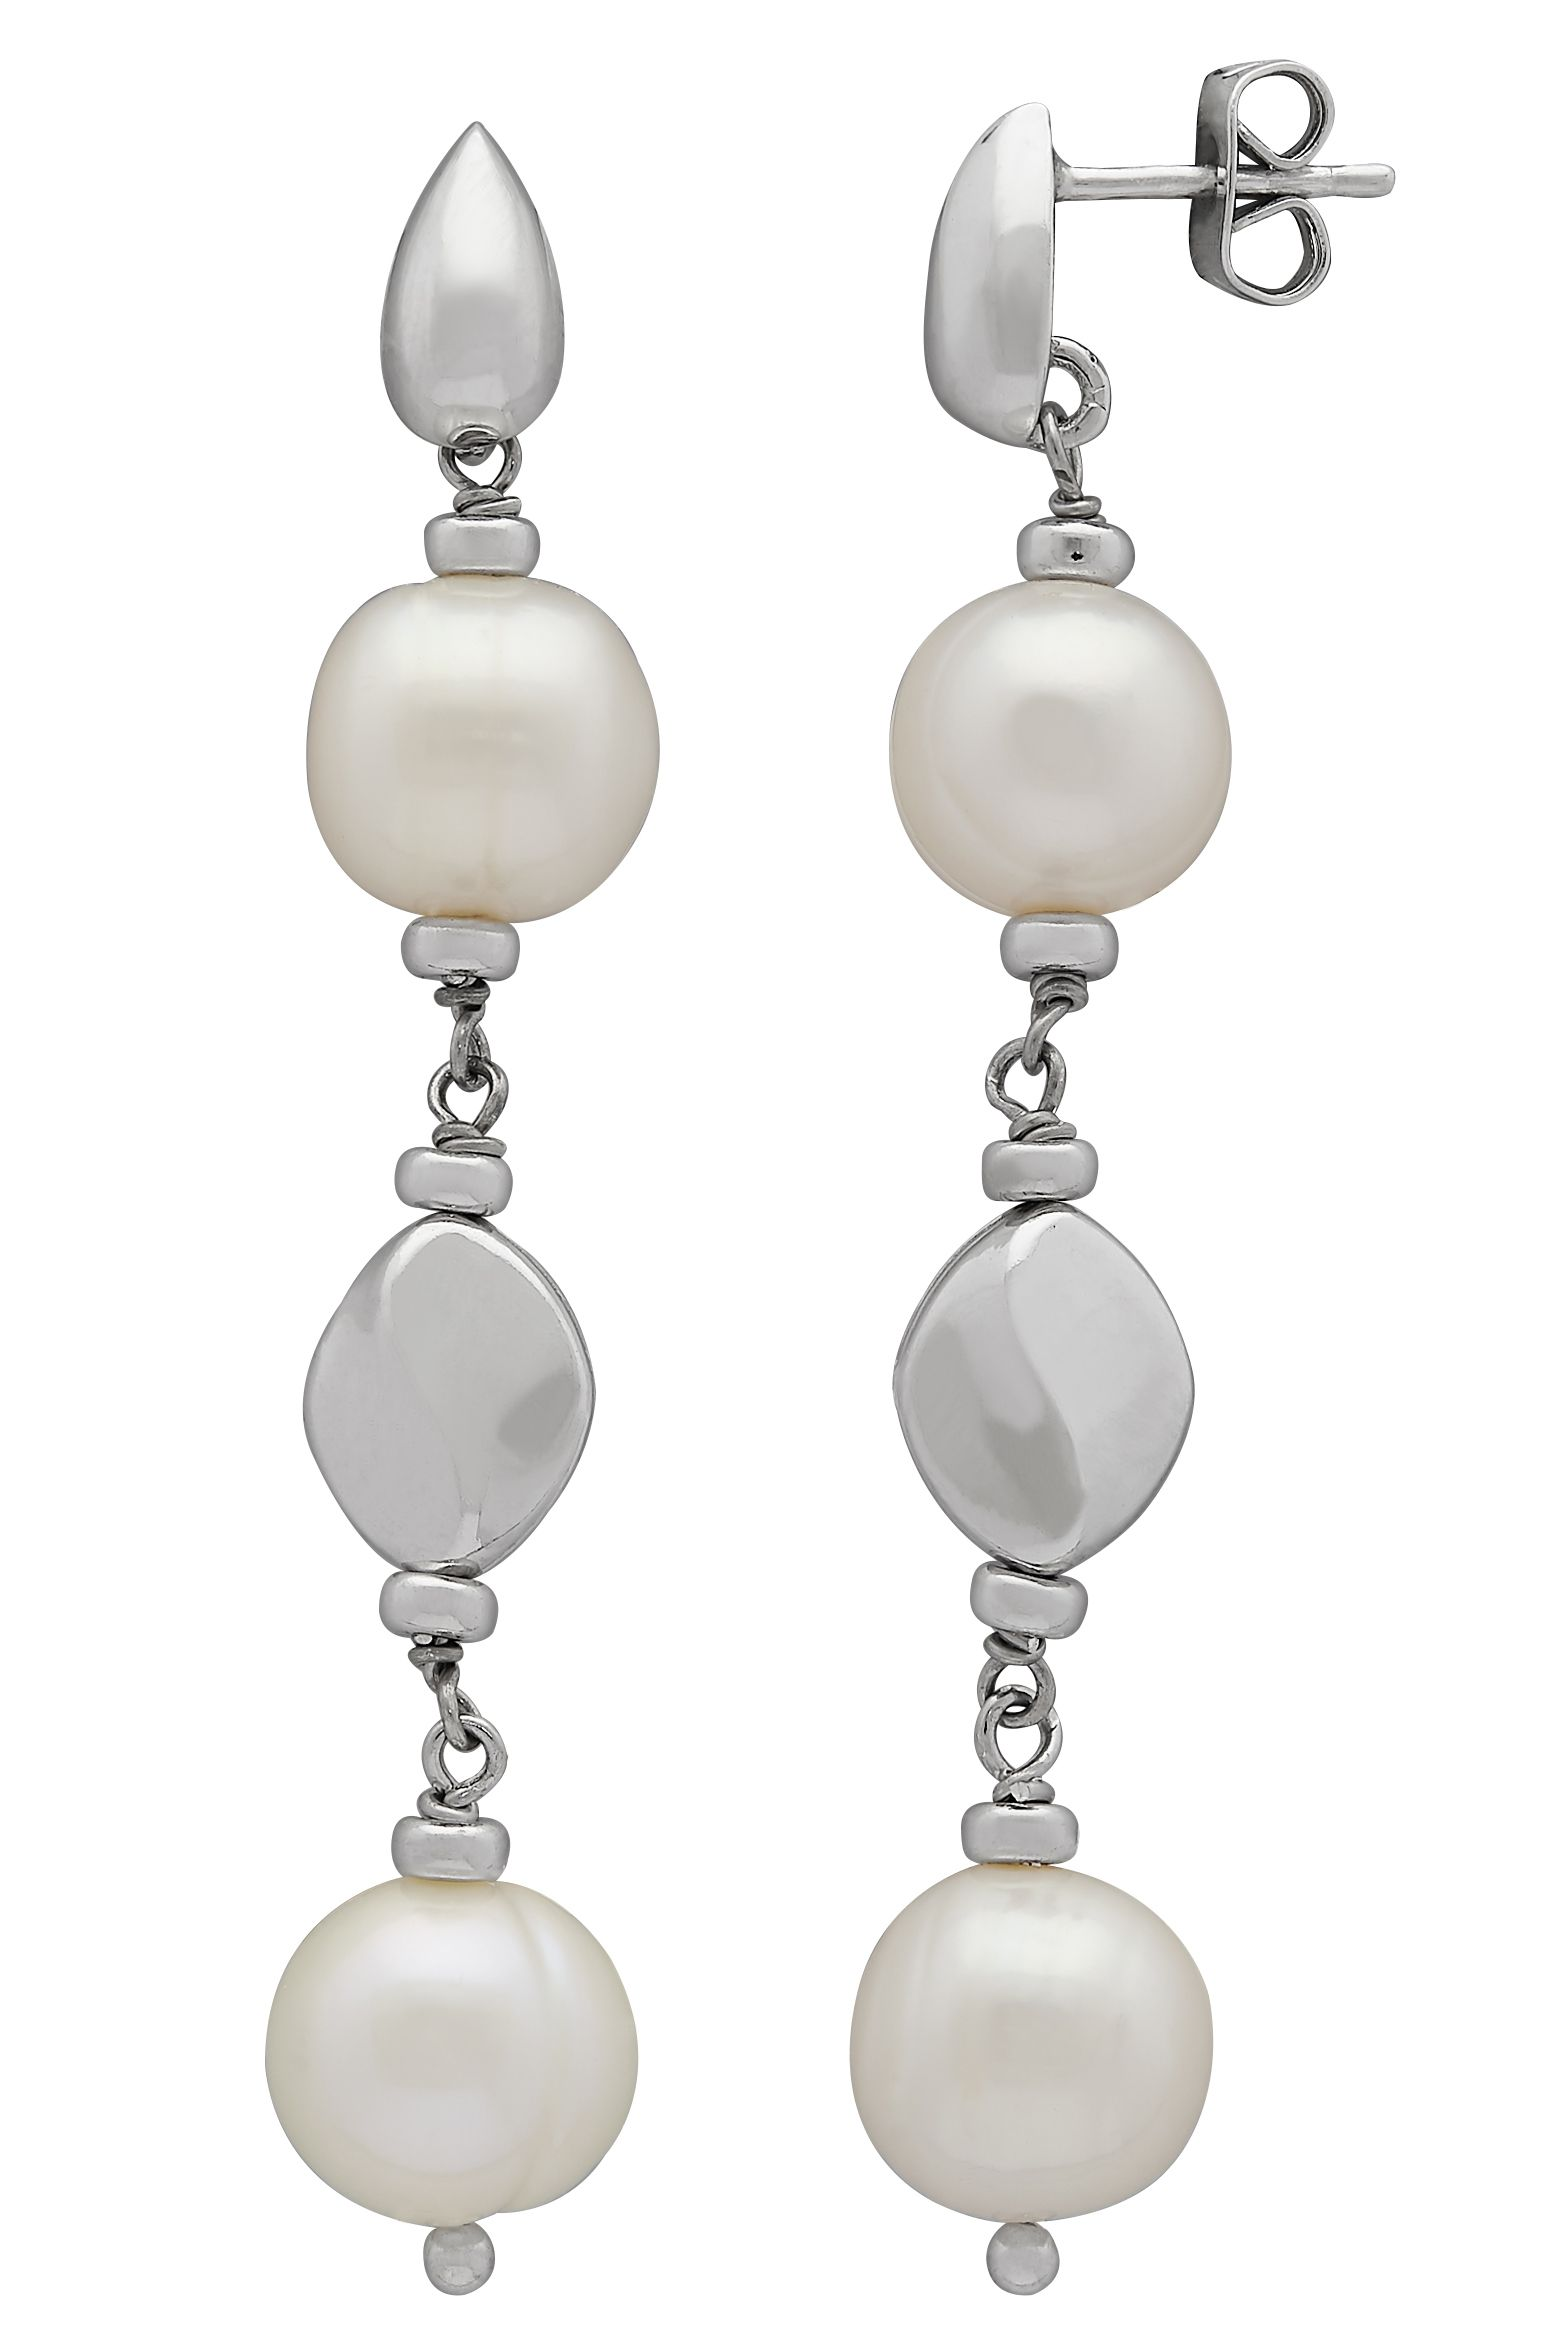 Honora Dots And Dashes 2 25 Cultured Pearl Drop Earrings In Sterling Silver Pearlearrings Pearls Jewelry